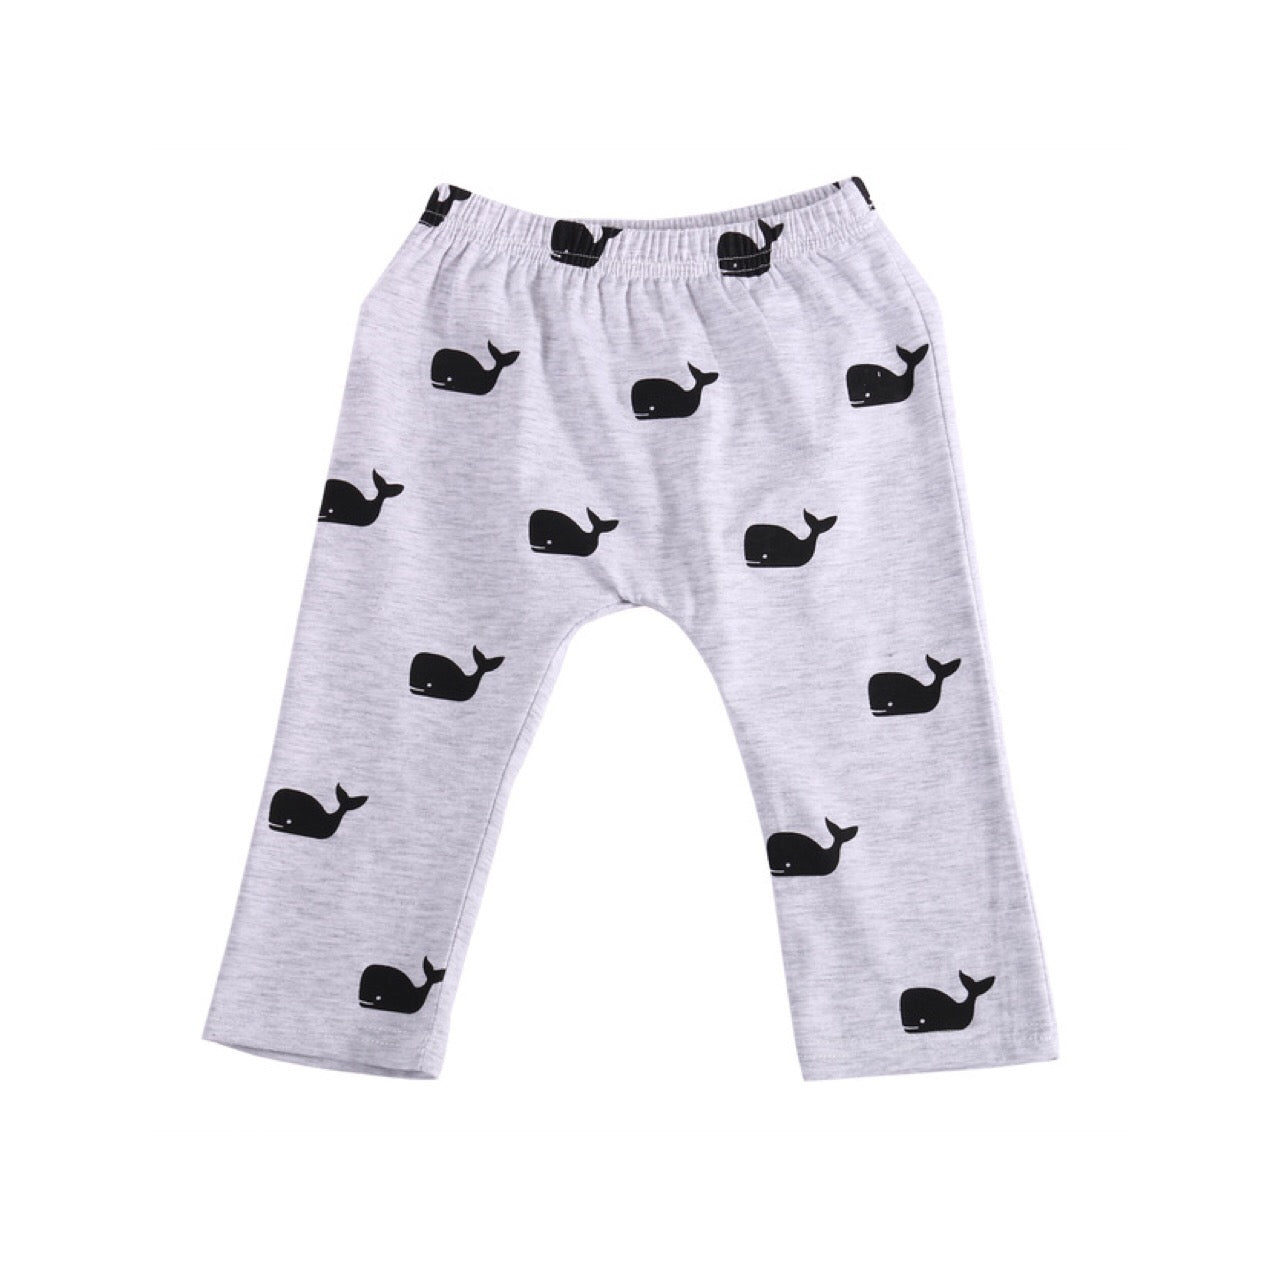 Gray Black Whale Long Pants for Baby and Toddler Boys 3-24M - Bonjour Bear